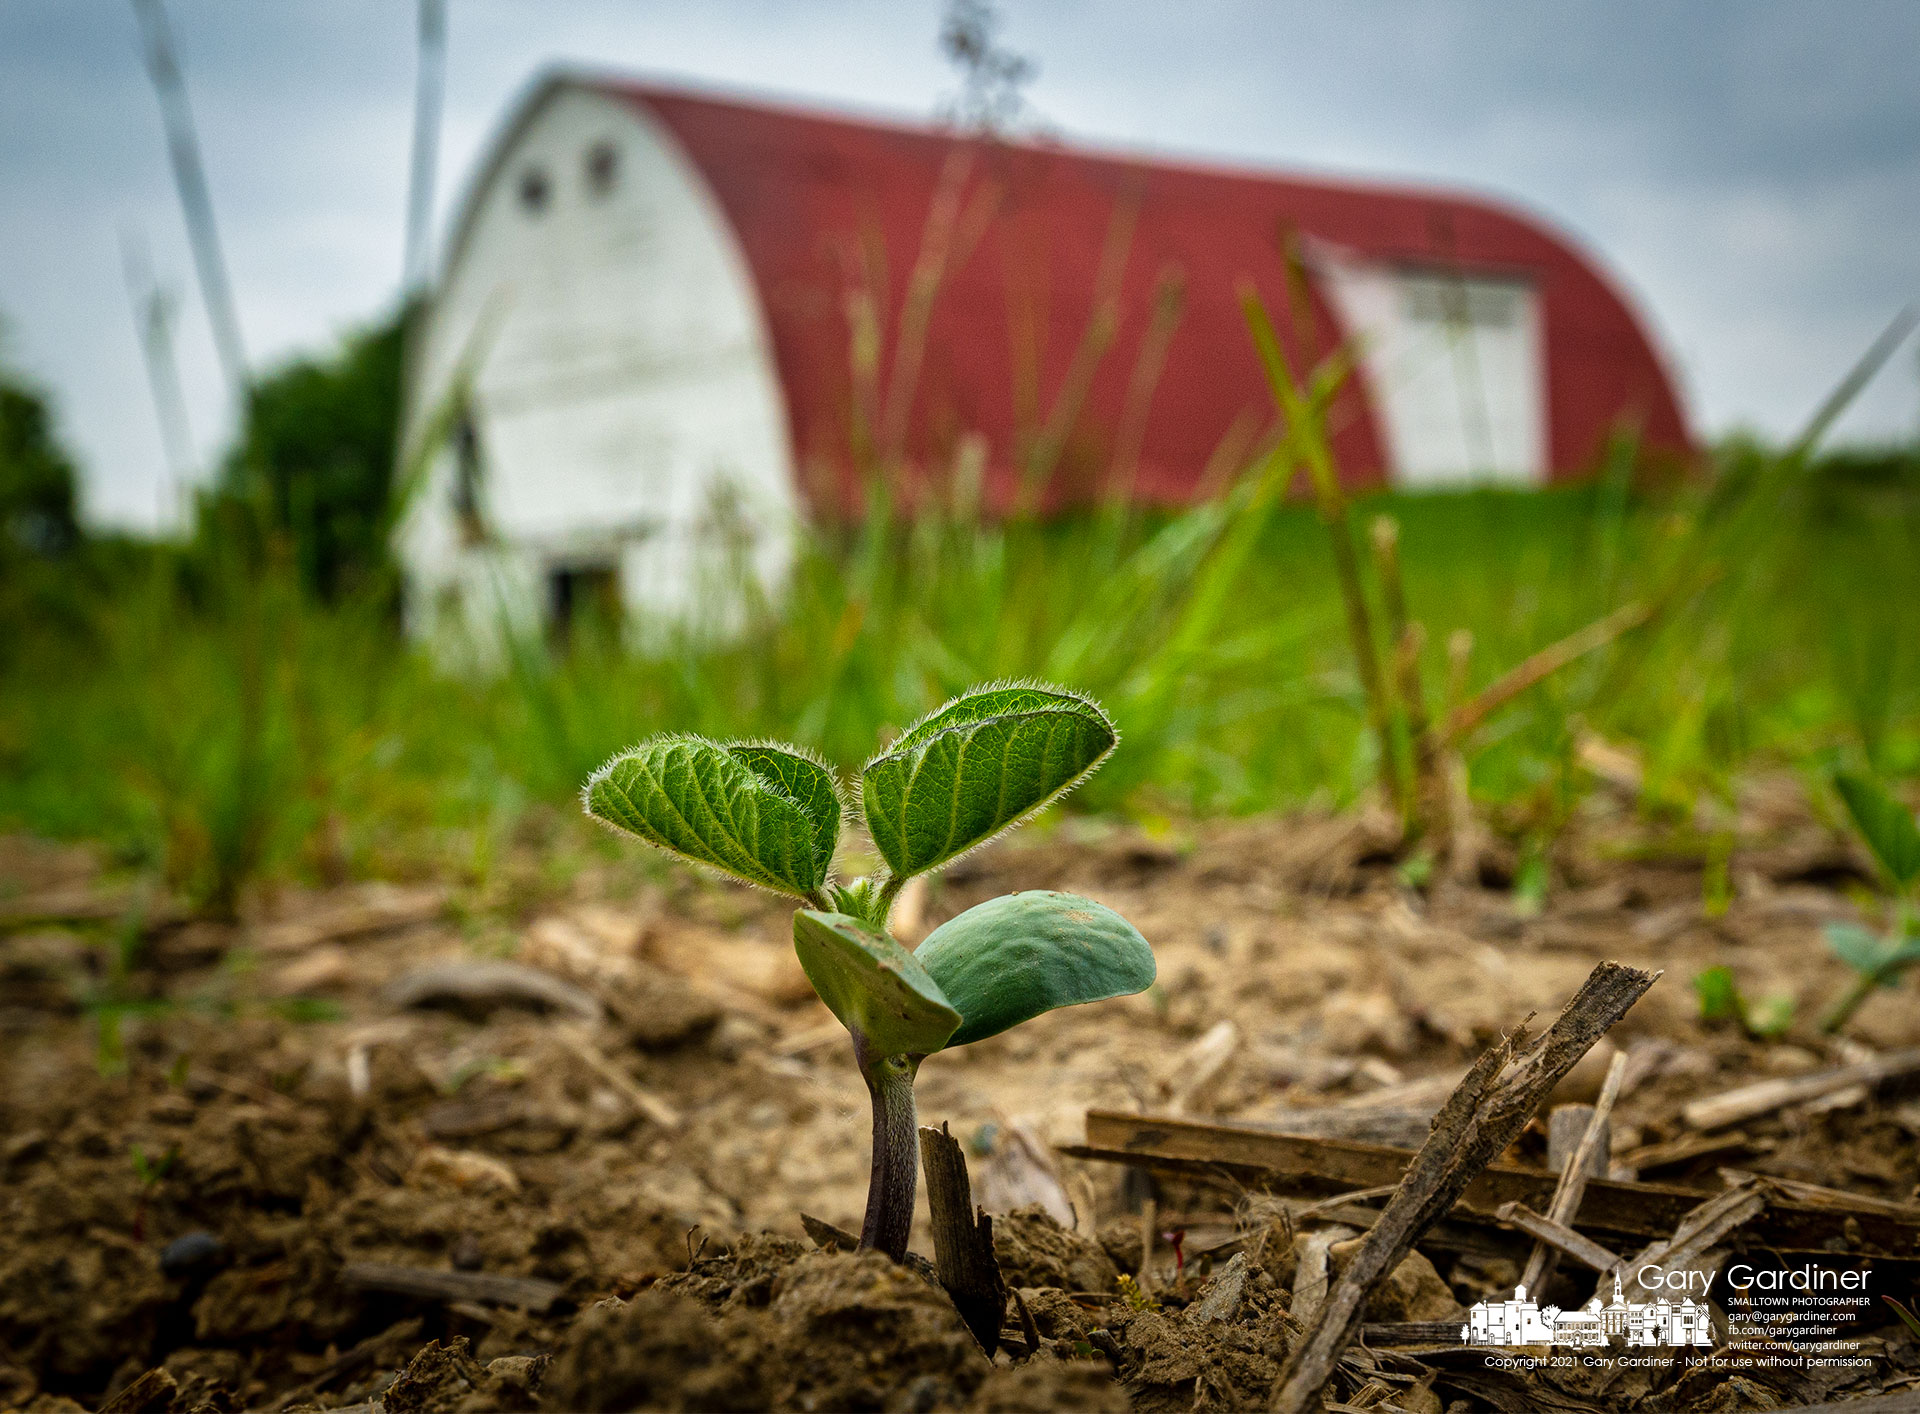 The first true leaves of a soybean plant begin to spread open on the Braun Farm more than two weeks after planting. My Final Photo for May 17, 2021.